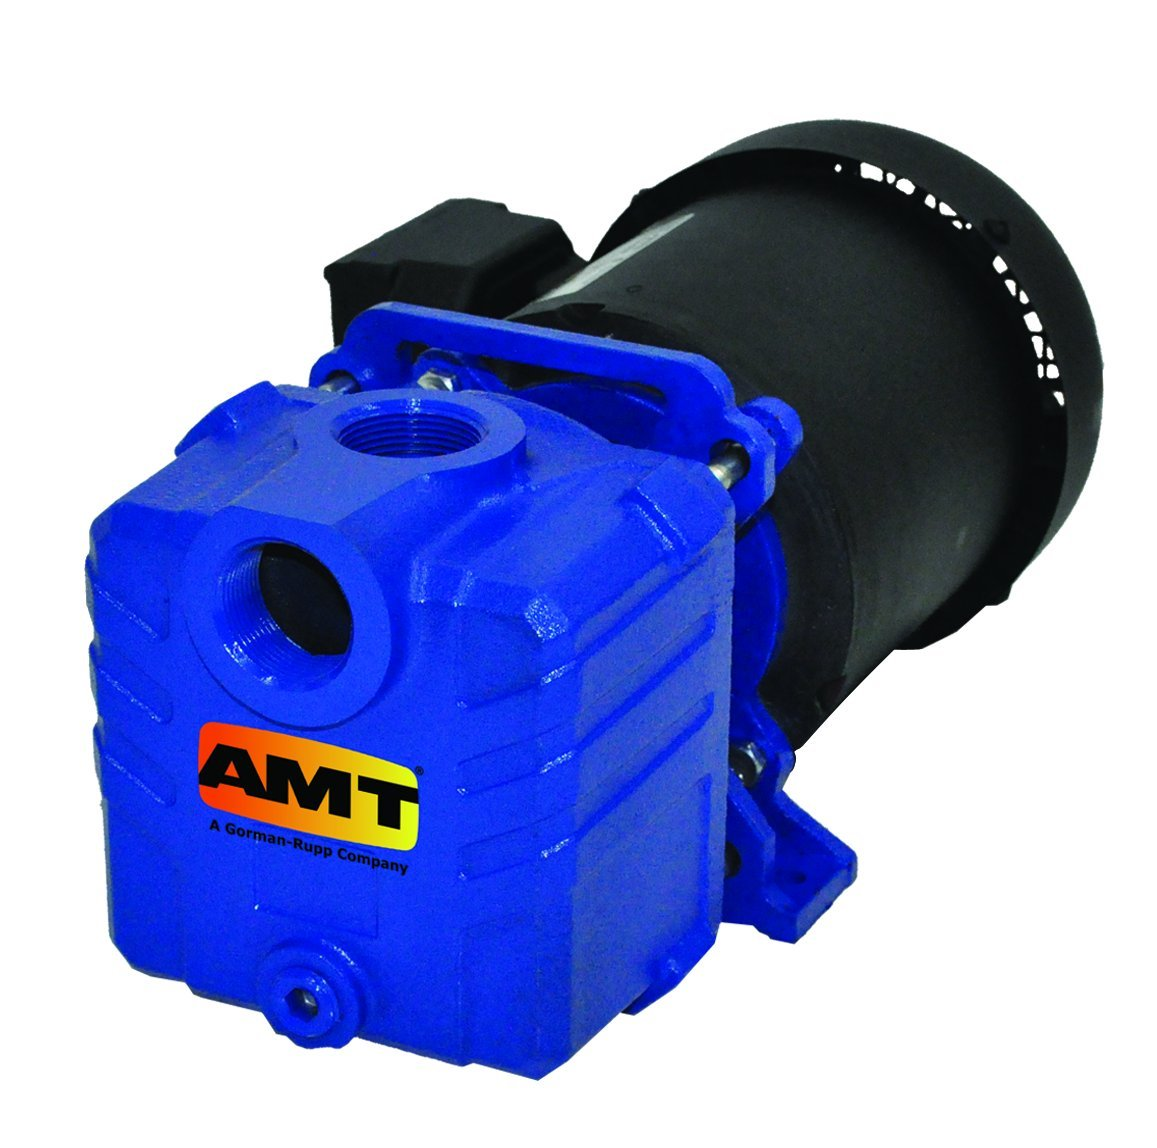 AMT Pump 2855-95 Self-Priming Centrifugal Pump, Cast Iron, 1 HP, 1 Phase, 115/230 V, Curve D, 1-1/4'' NPT Female Suction & Discharge Ports